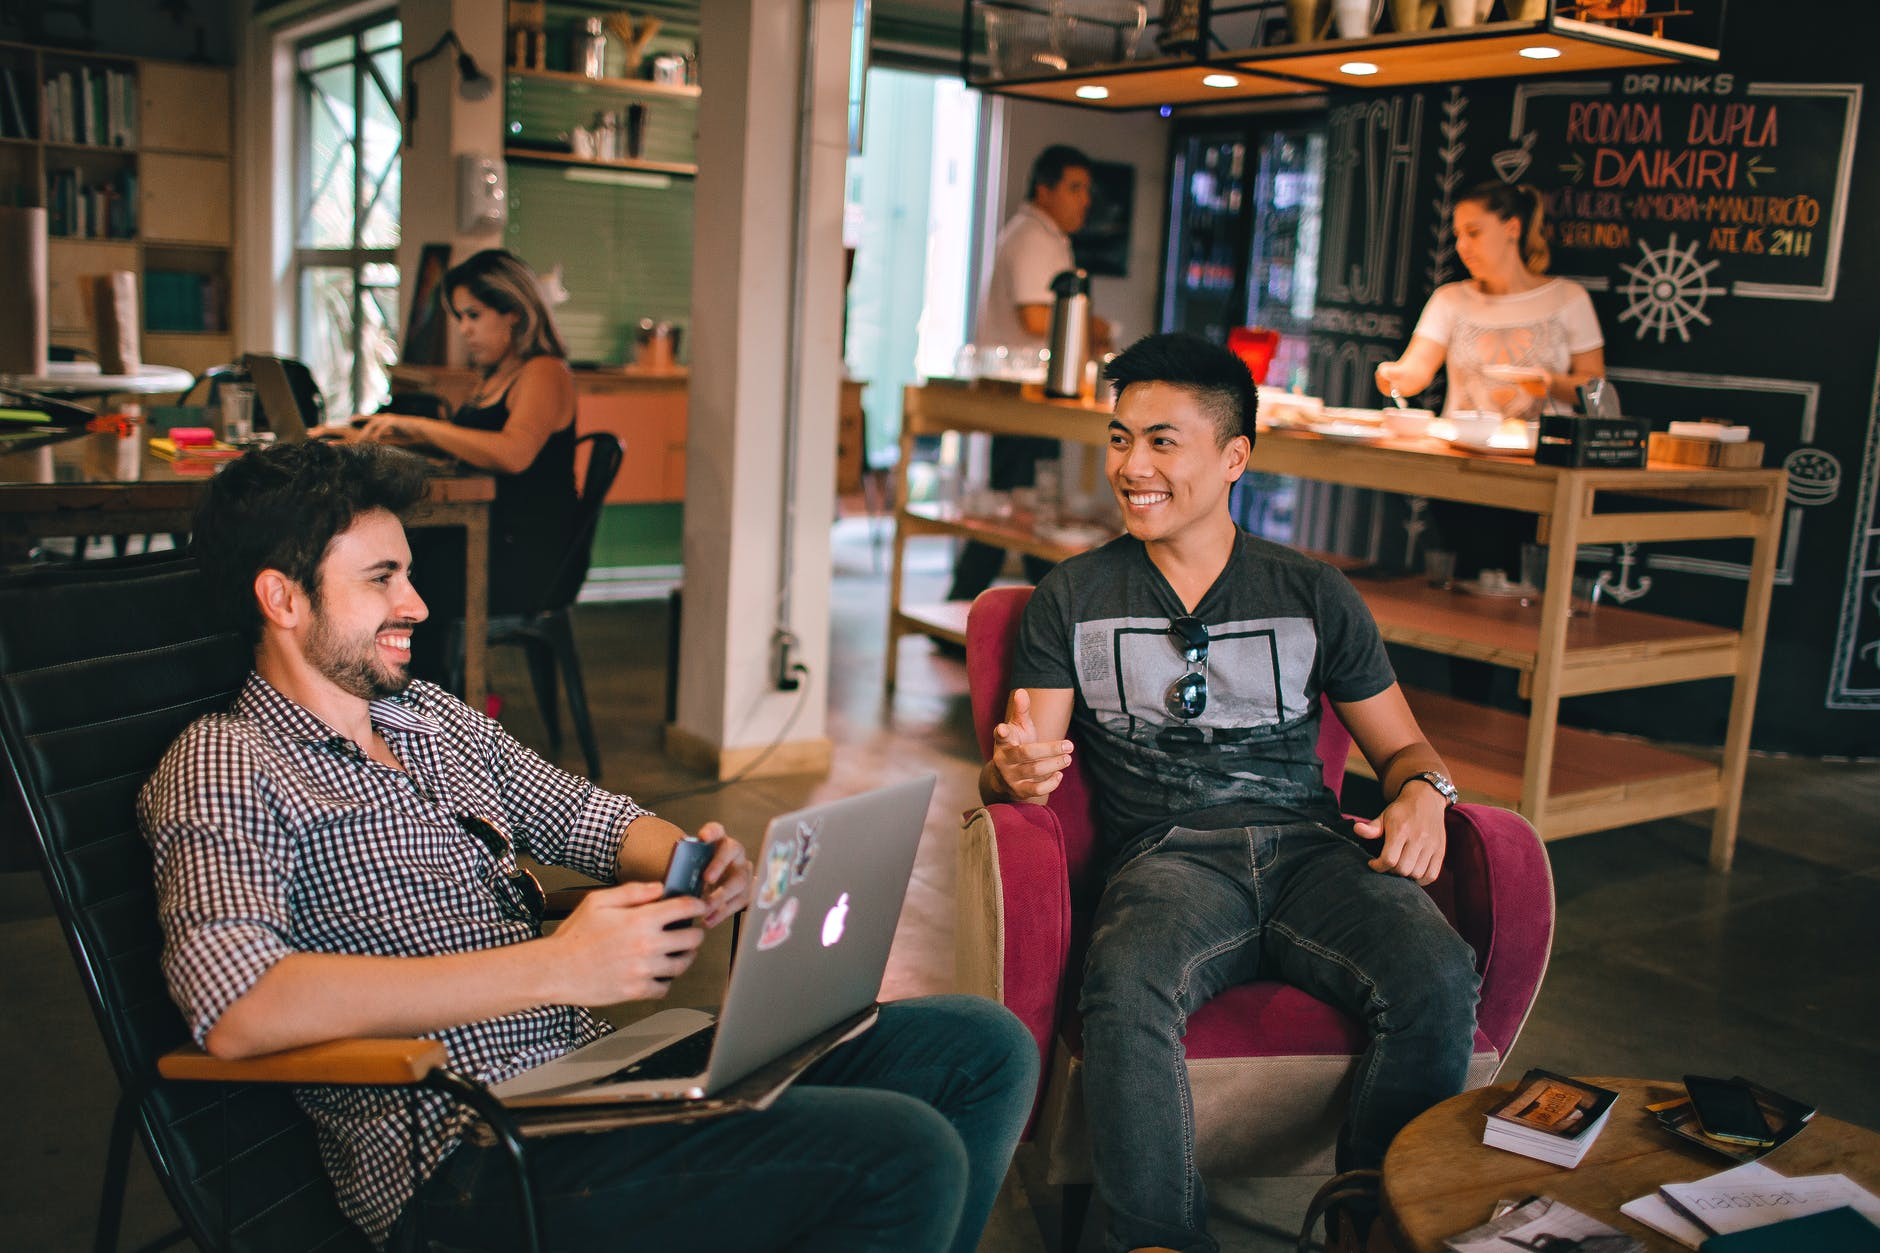 Start up culture office with coworkers smiling